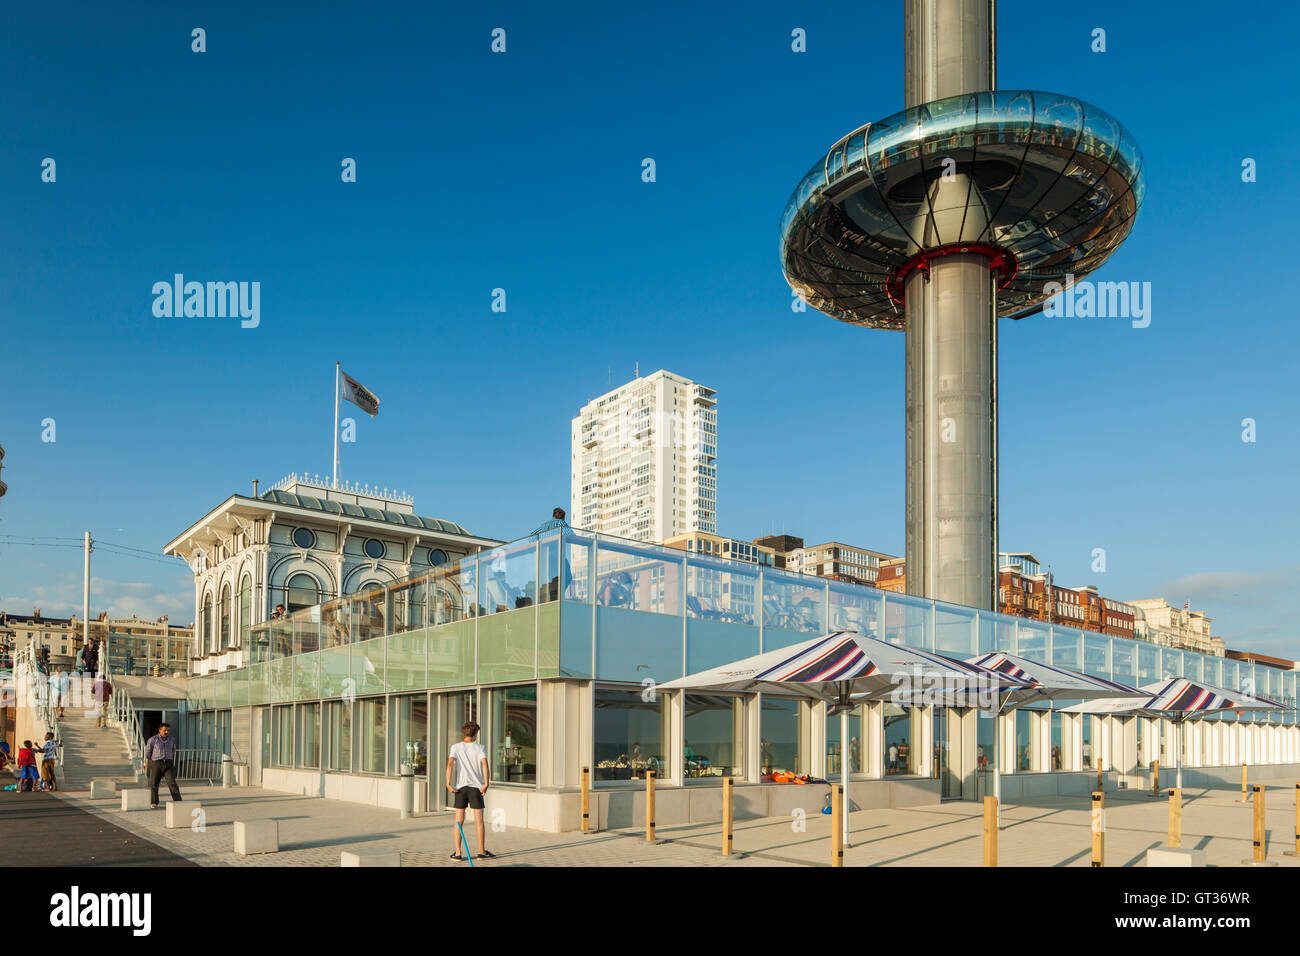 Summer afternoon at i360 viewing platform in Brighton, East Sussex, England. - Stock Image